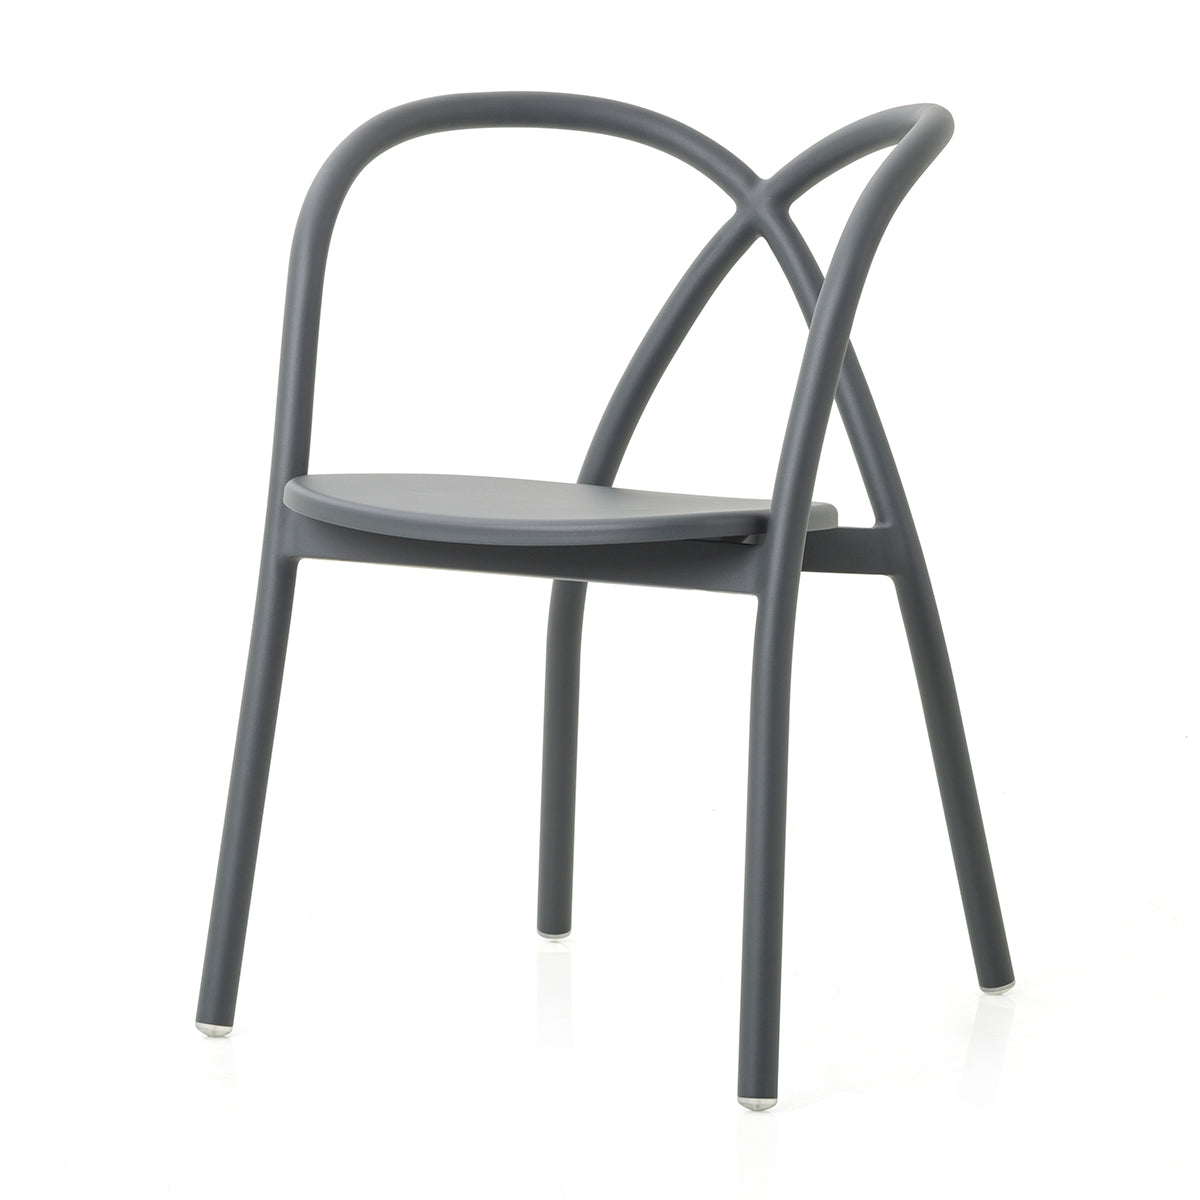 Ming Aluminium Chair (Outdoor) - Stellar Works - Do Shop